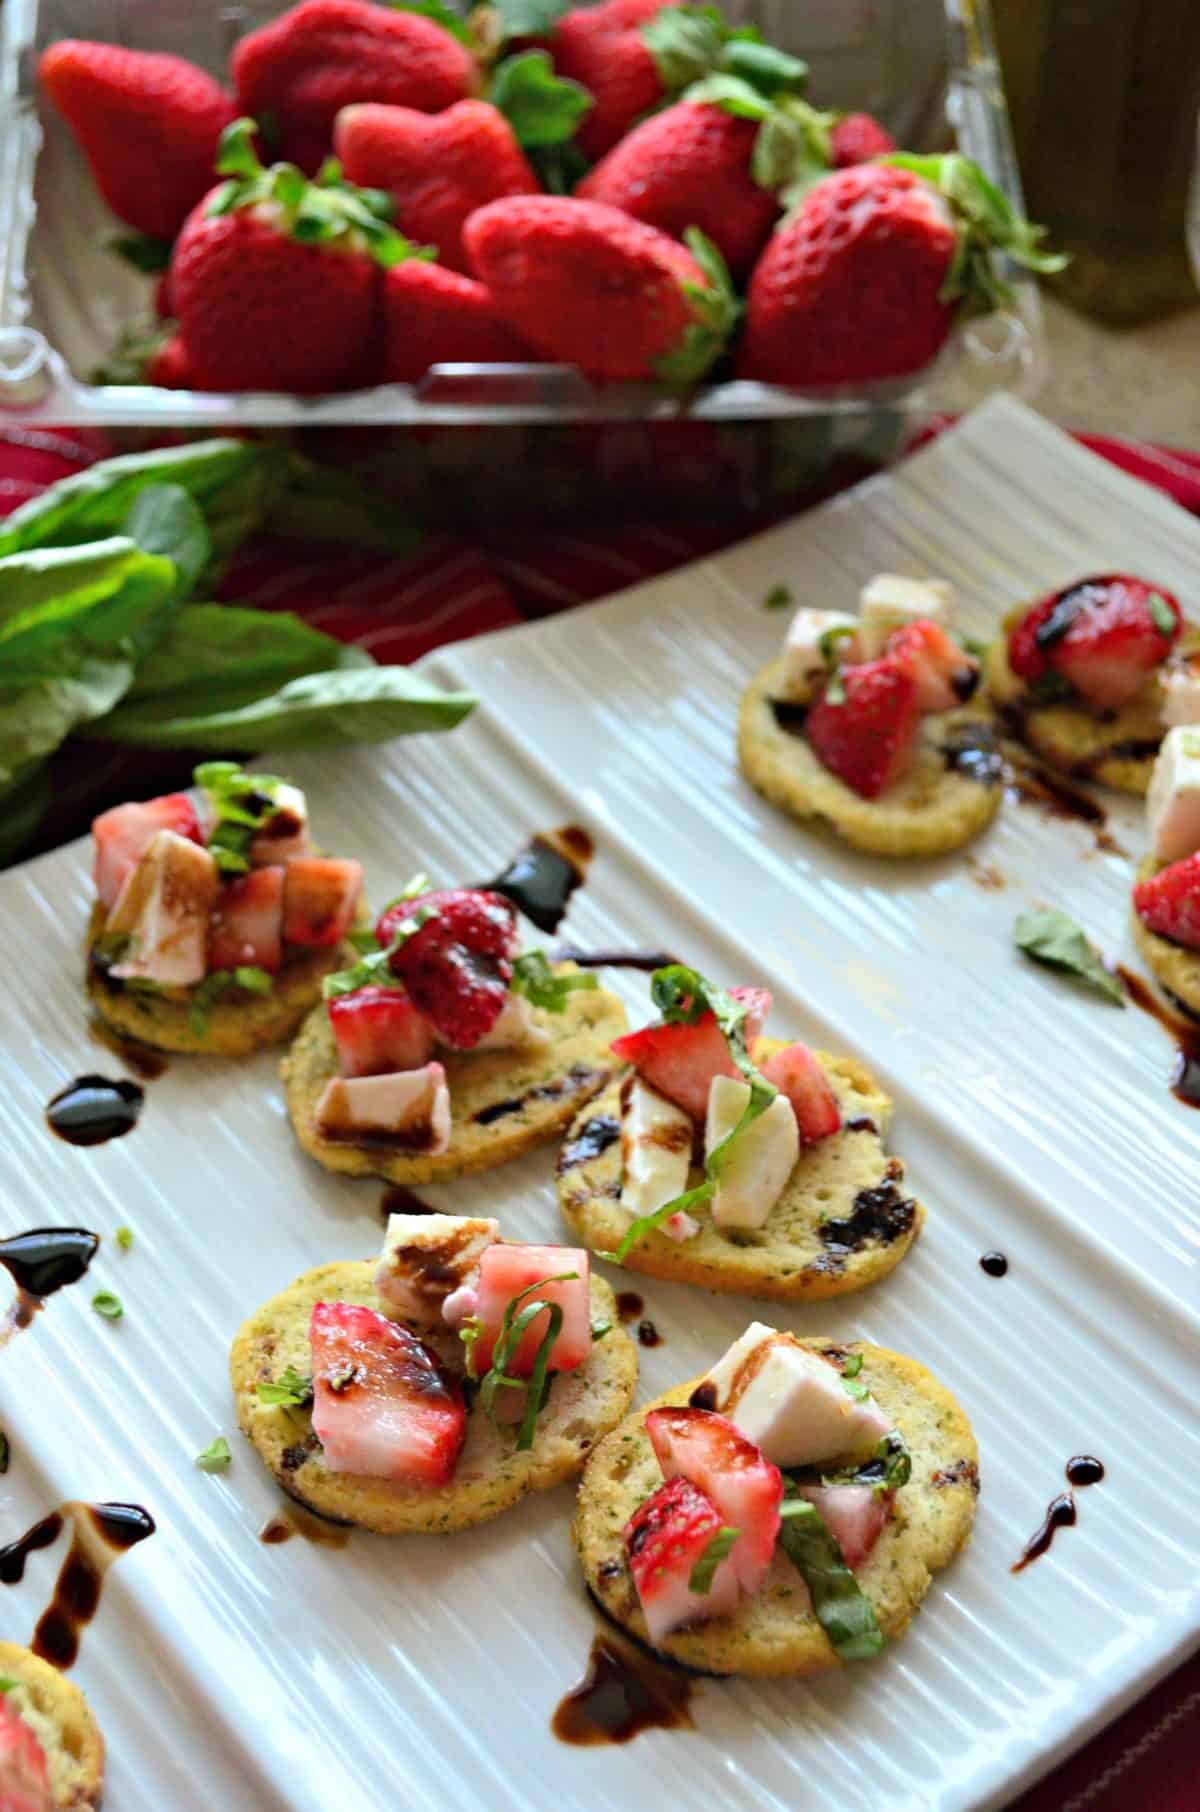 closeup of herbed crackers topped with strawberries, cheese, balsamic, and basil on white platter.